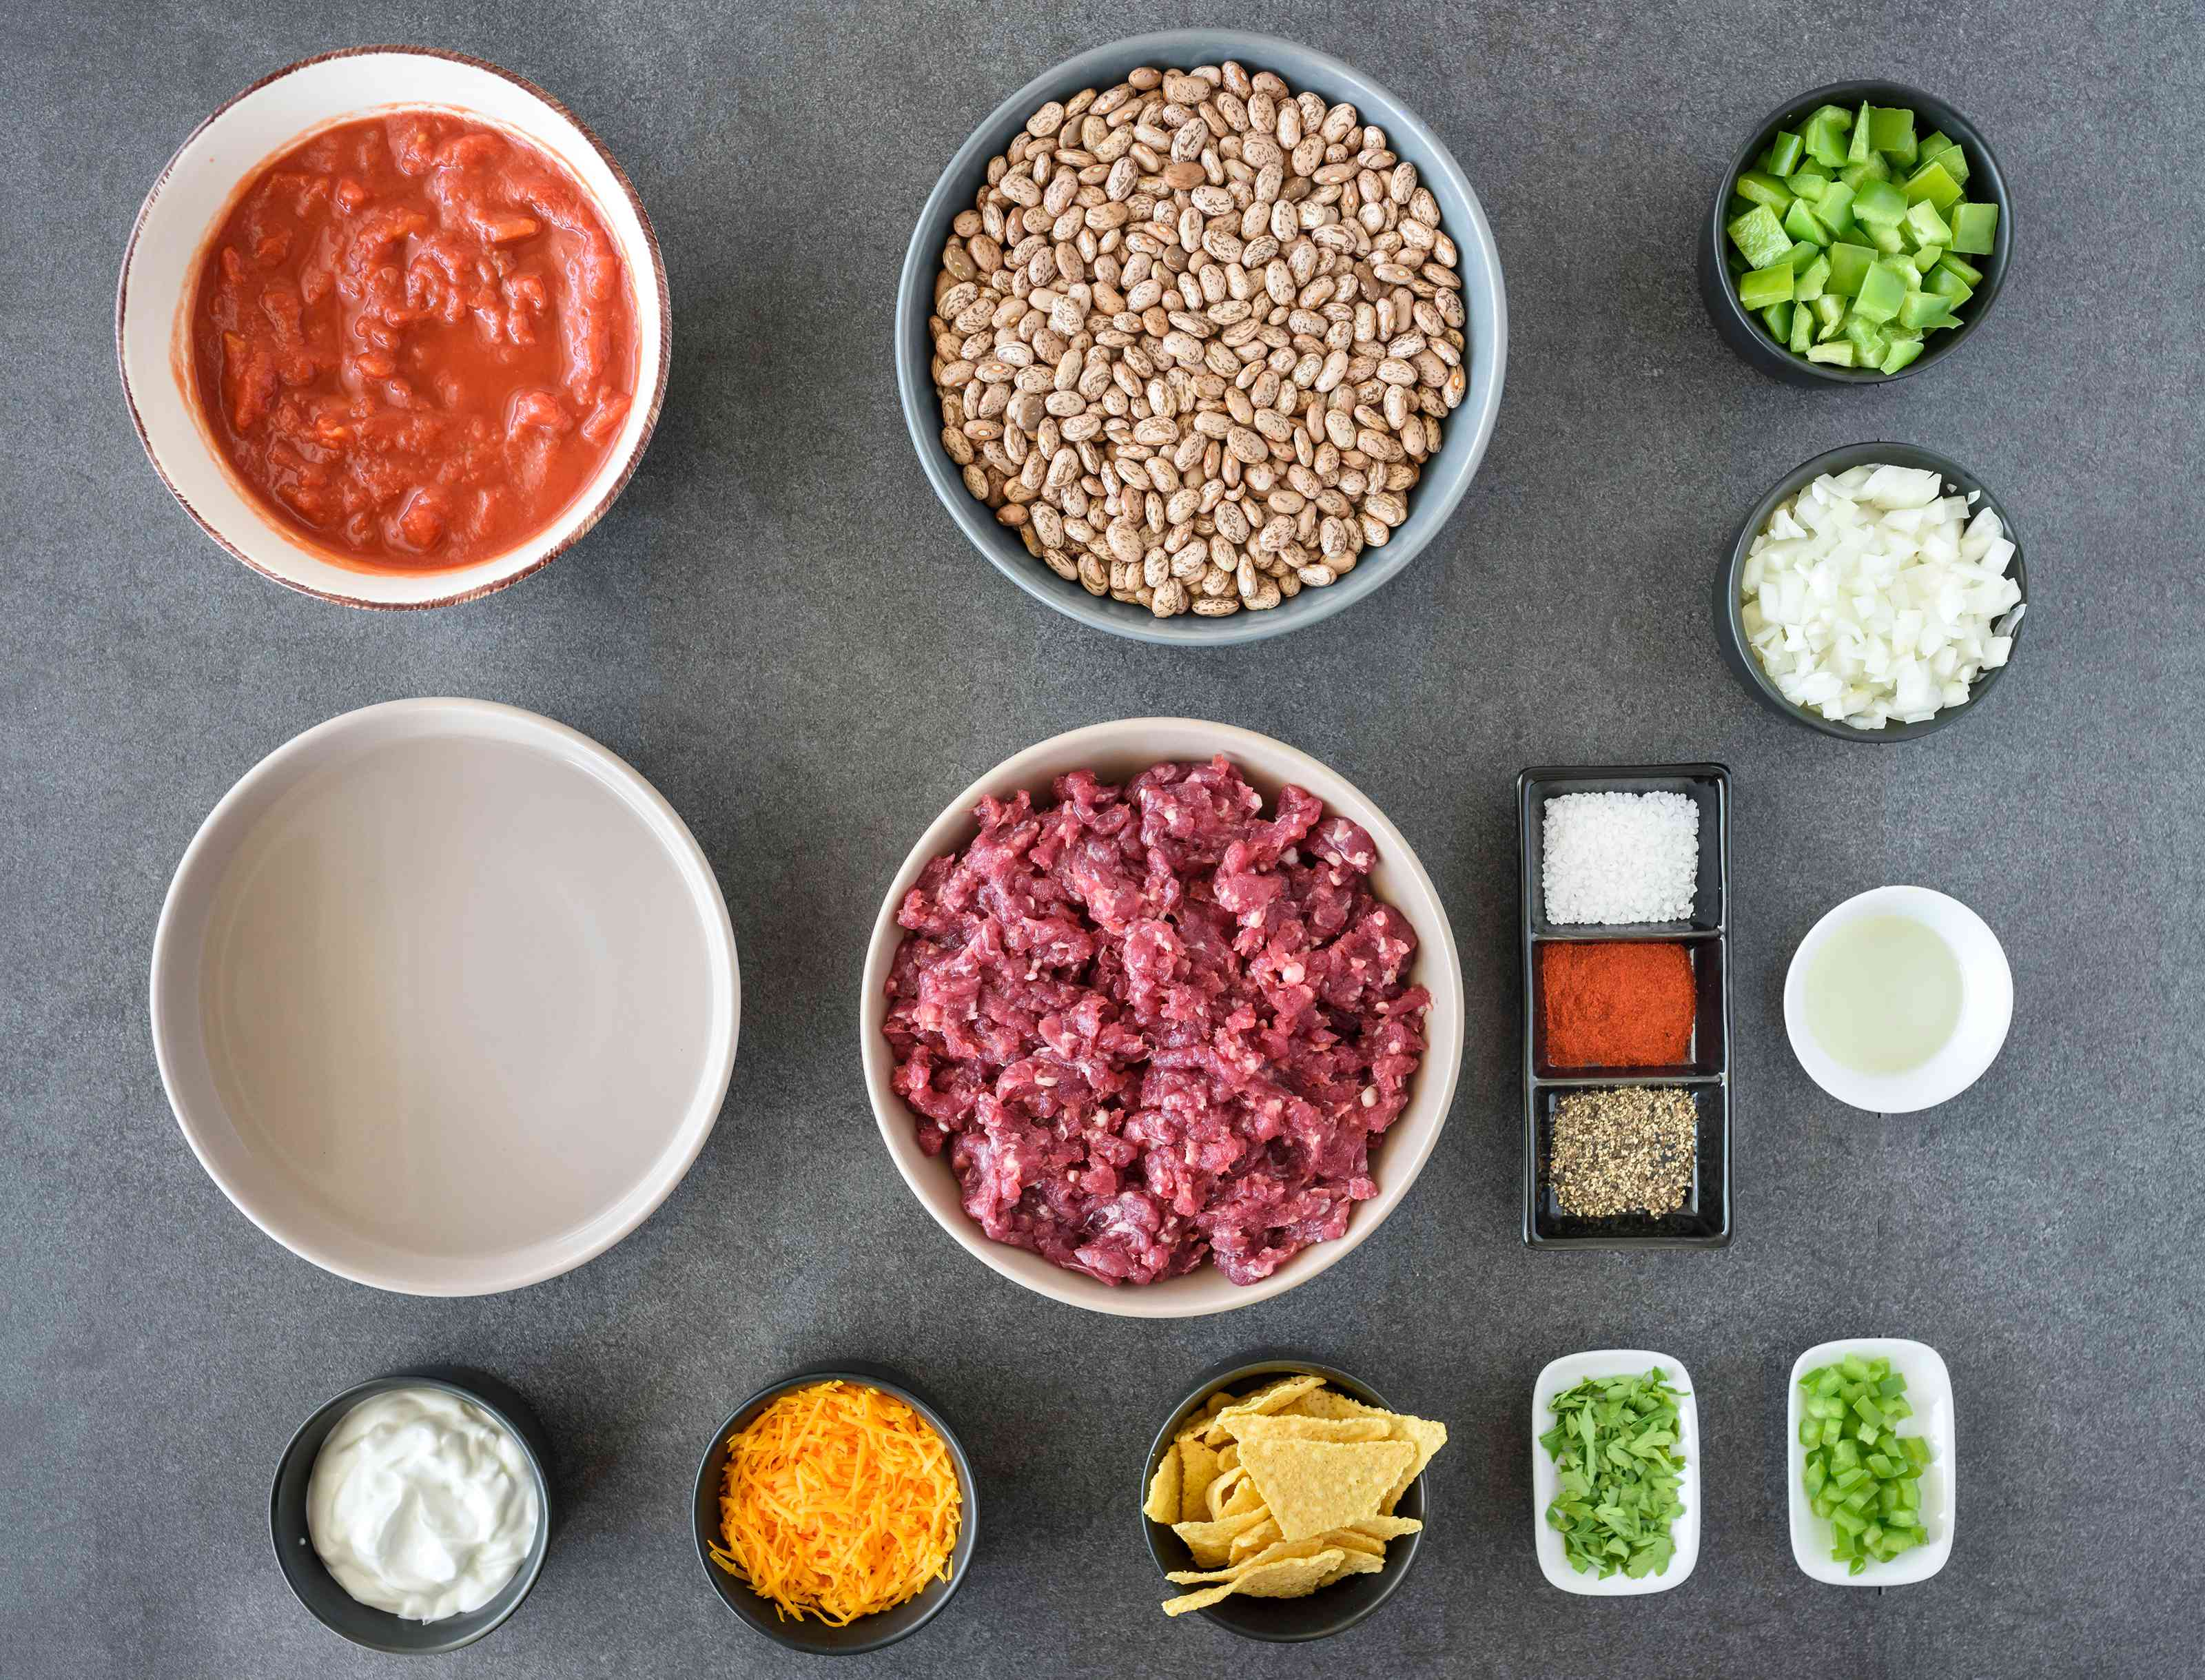 Ingredients for easy slow cooked chili beans